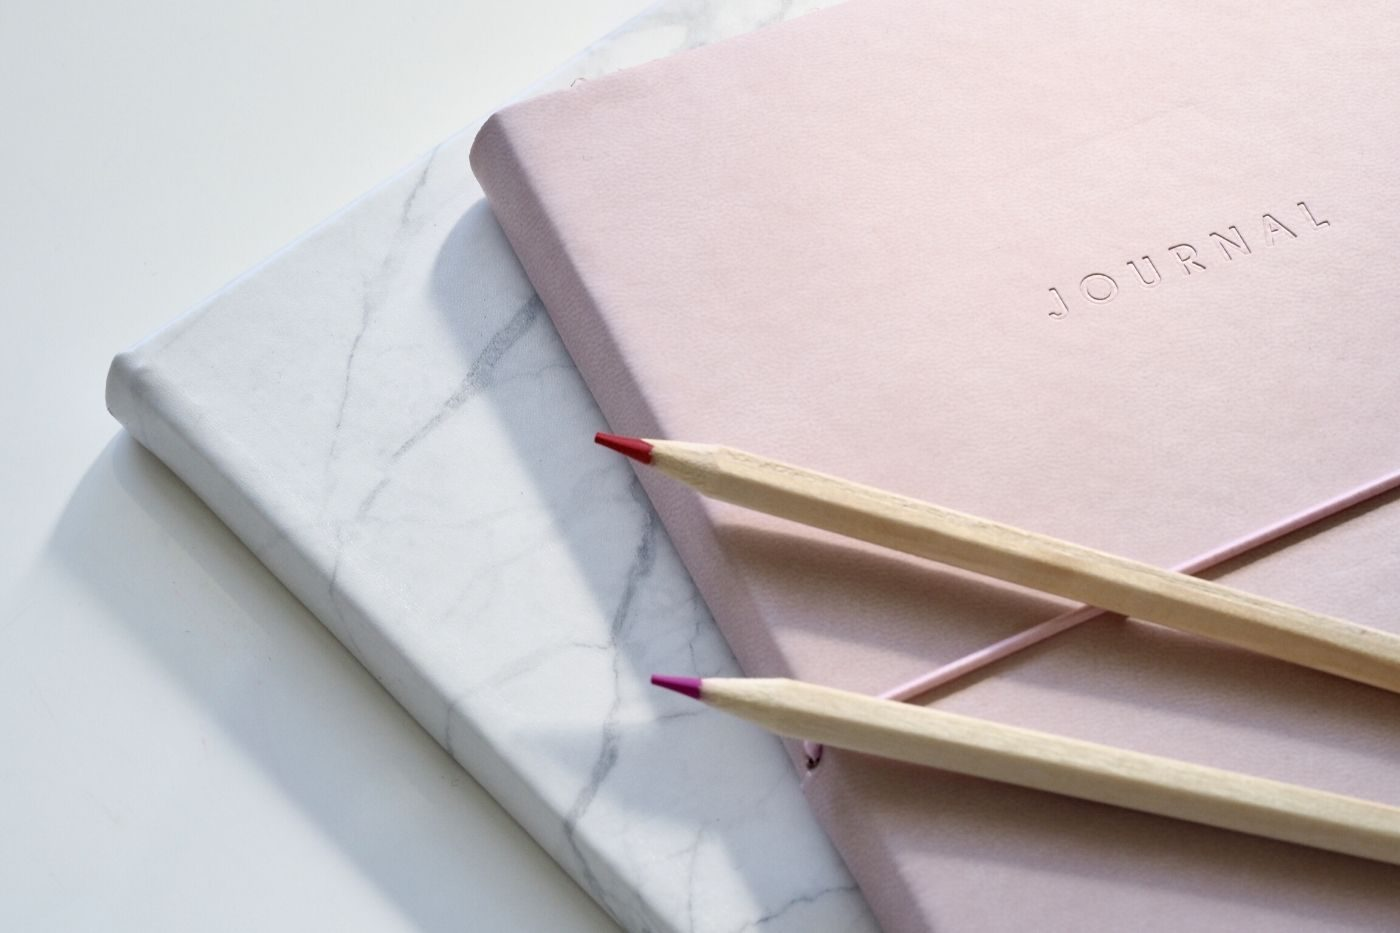 A pastel pink journal with a pen on it